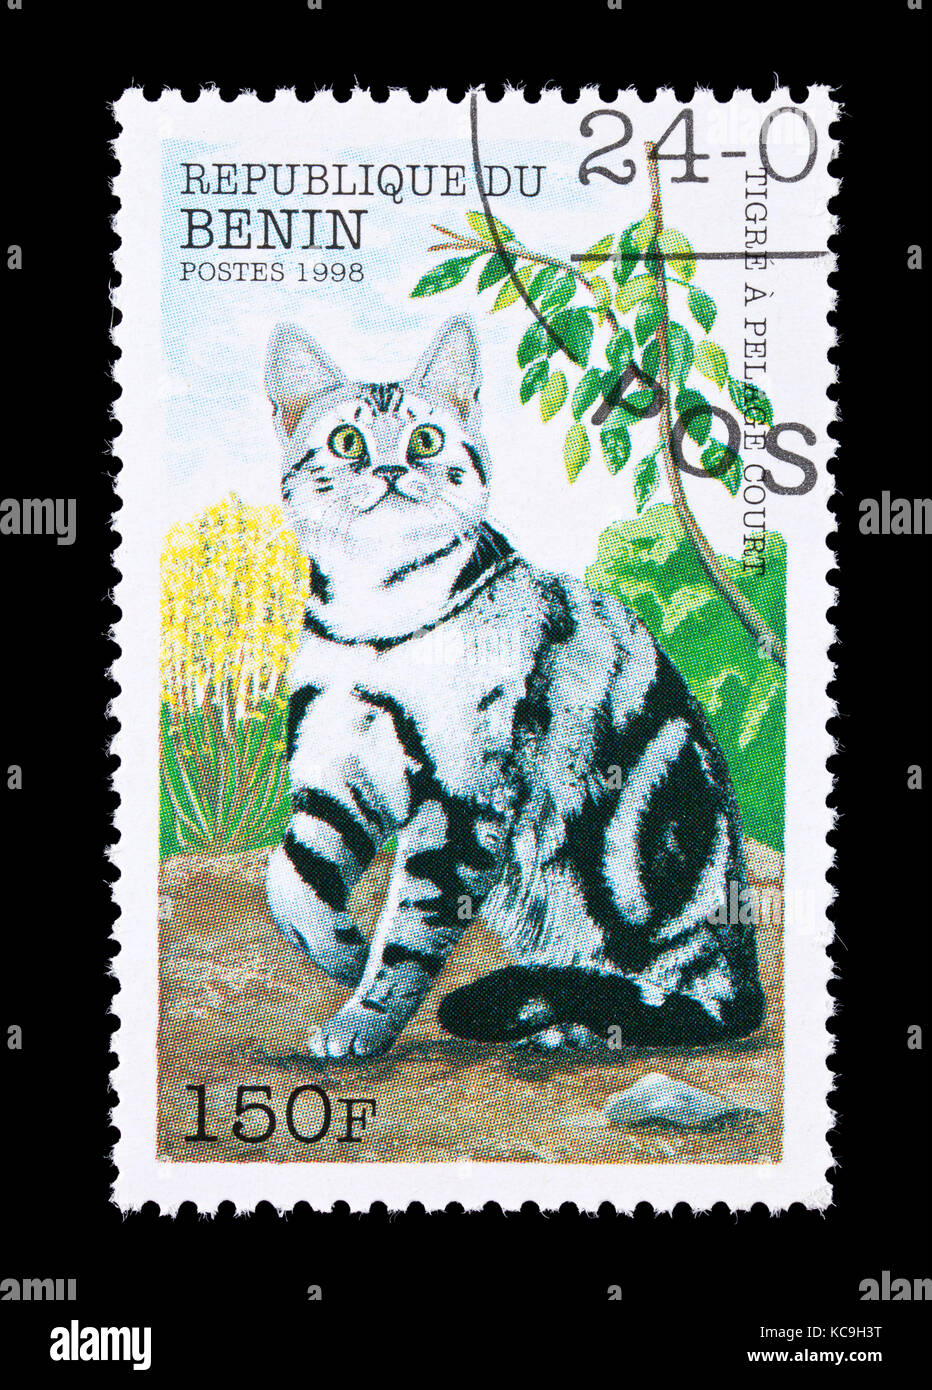 Postage stamp from Benin depicting an striped shorthairn breed of house cat. - Stock Image